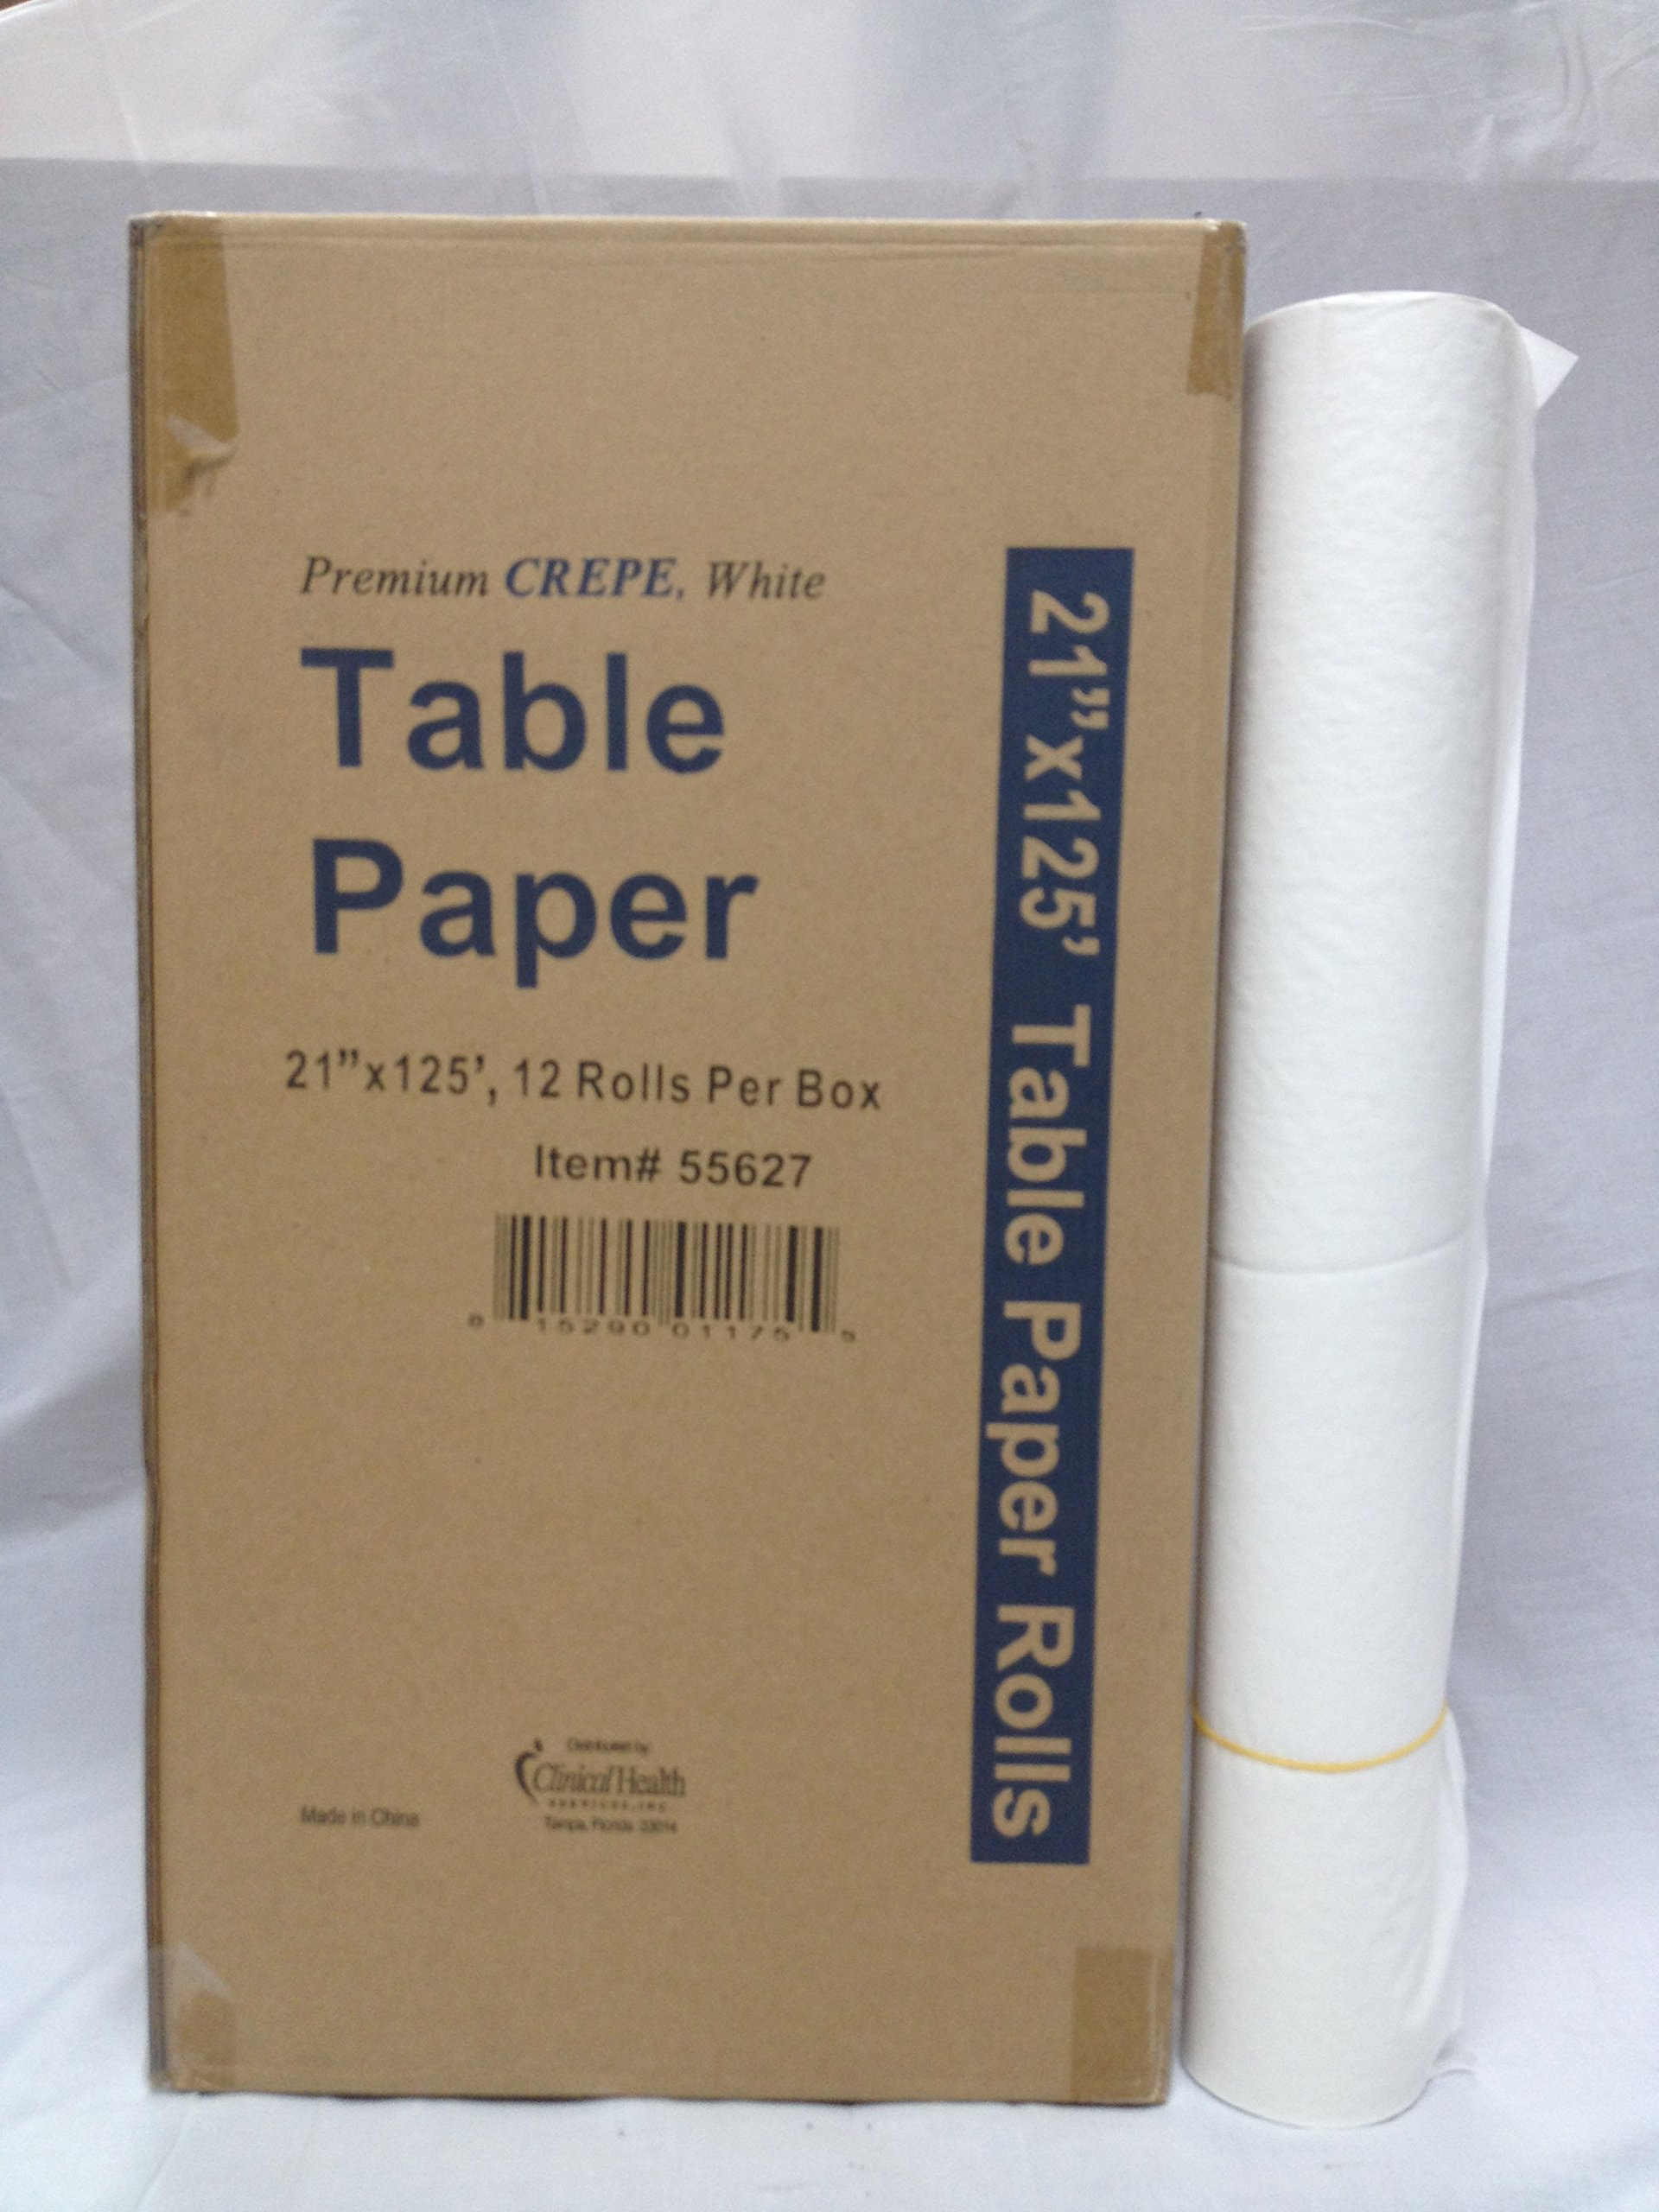 21''x125' Crêpe Exam Tablepaper Rolls, 12 per case by Clinical Health Services, Inc. (Image #1)